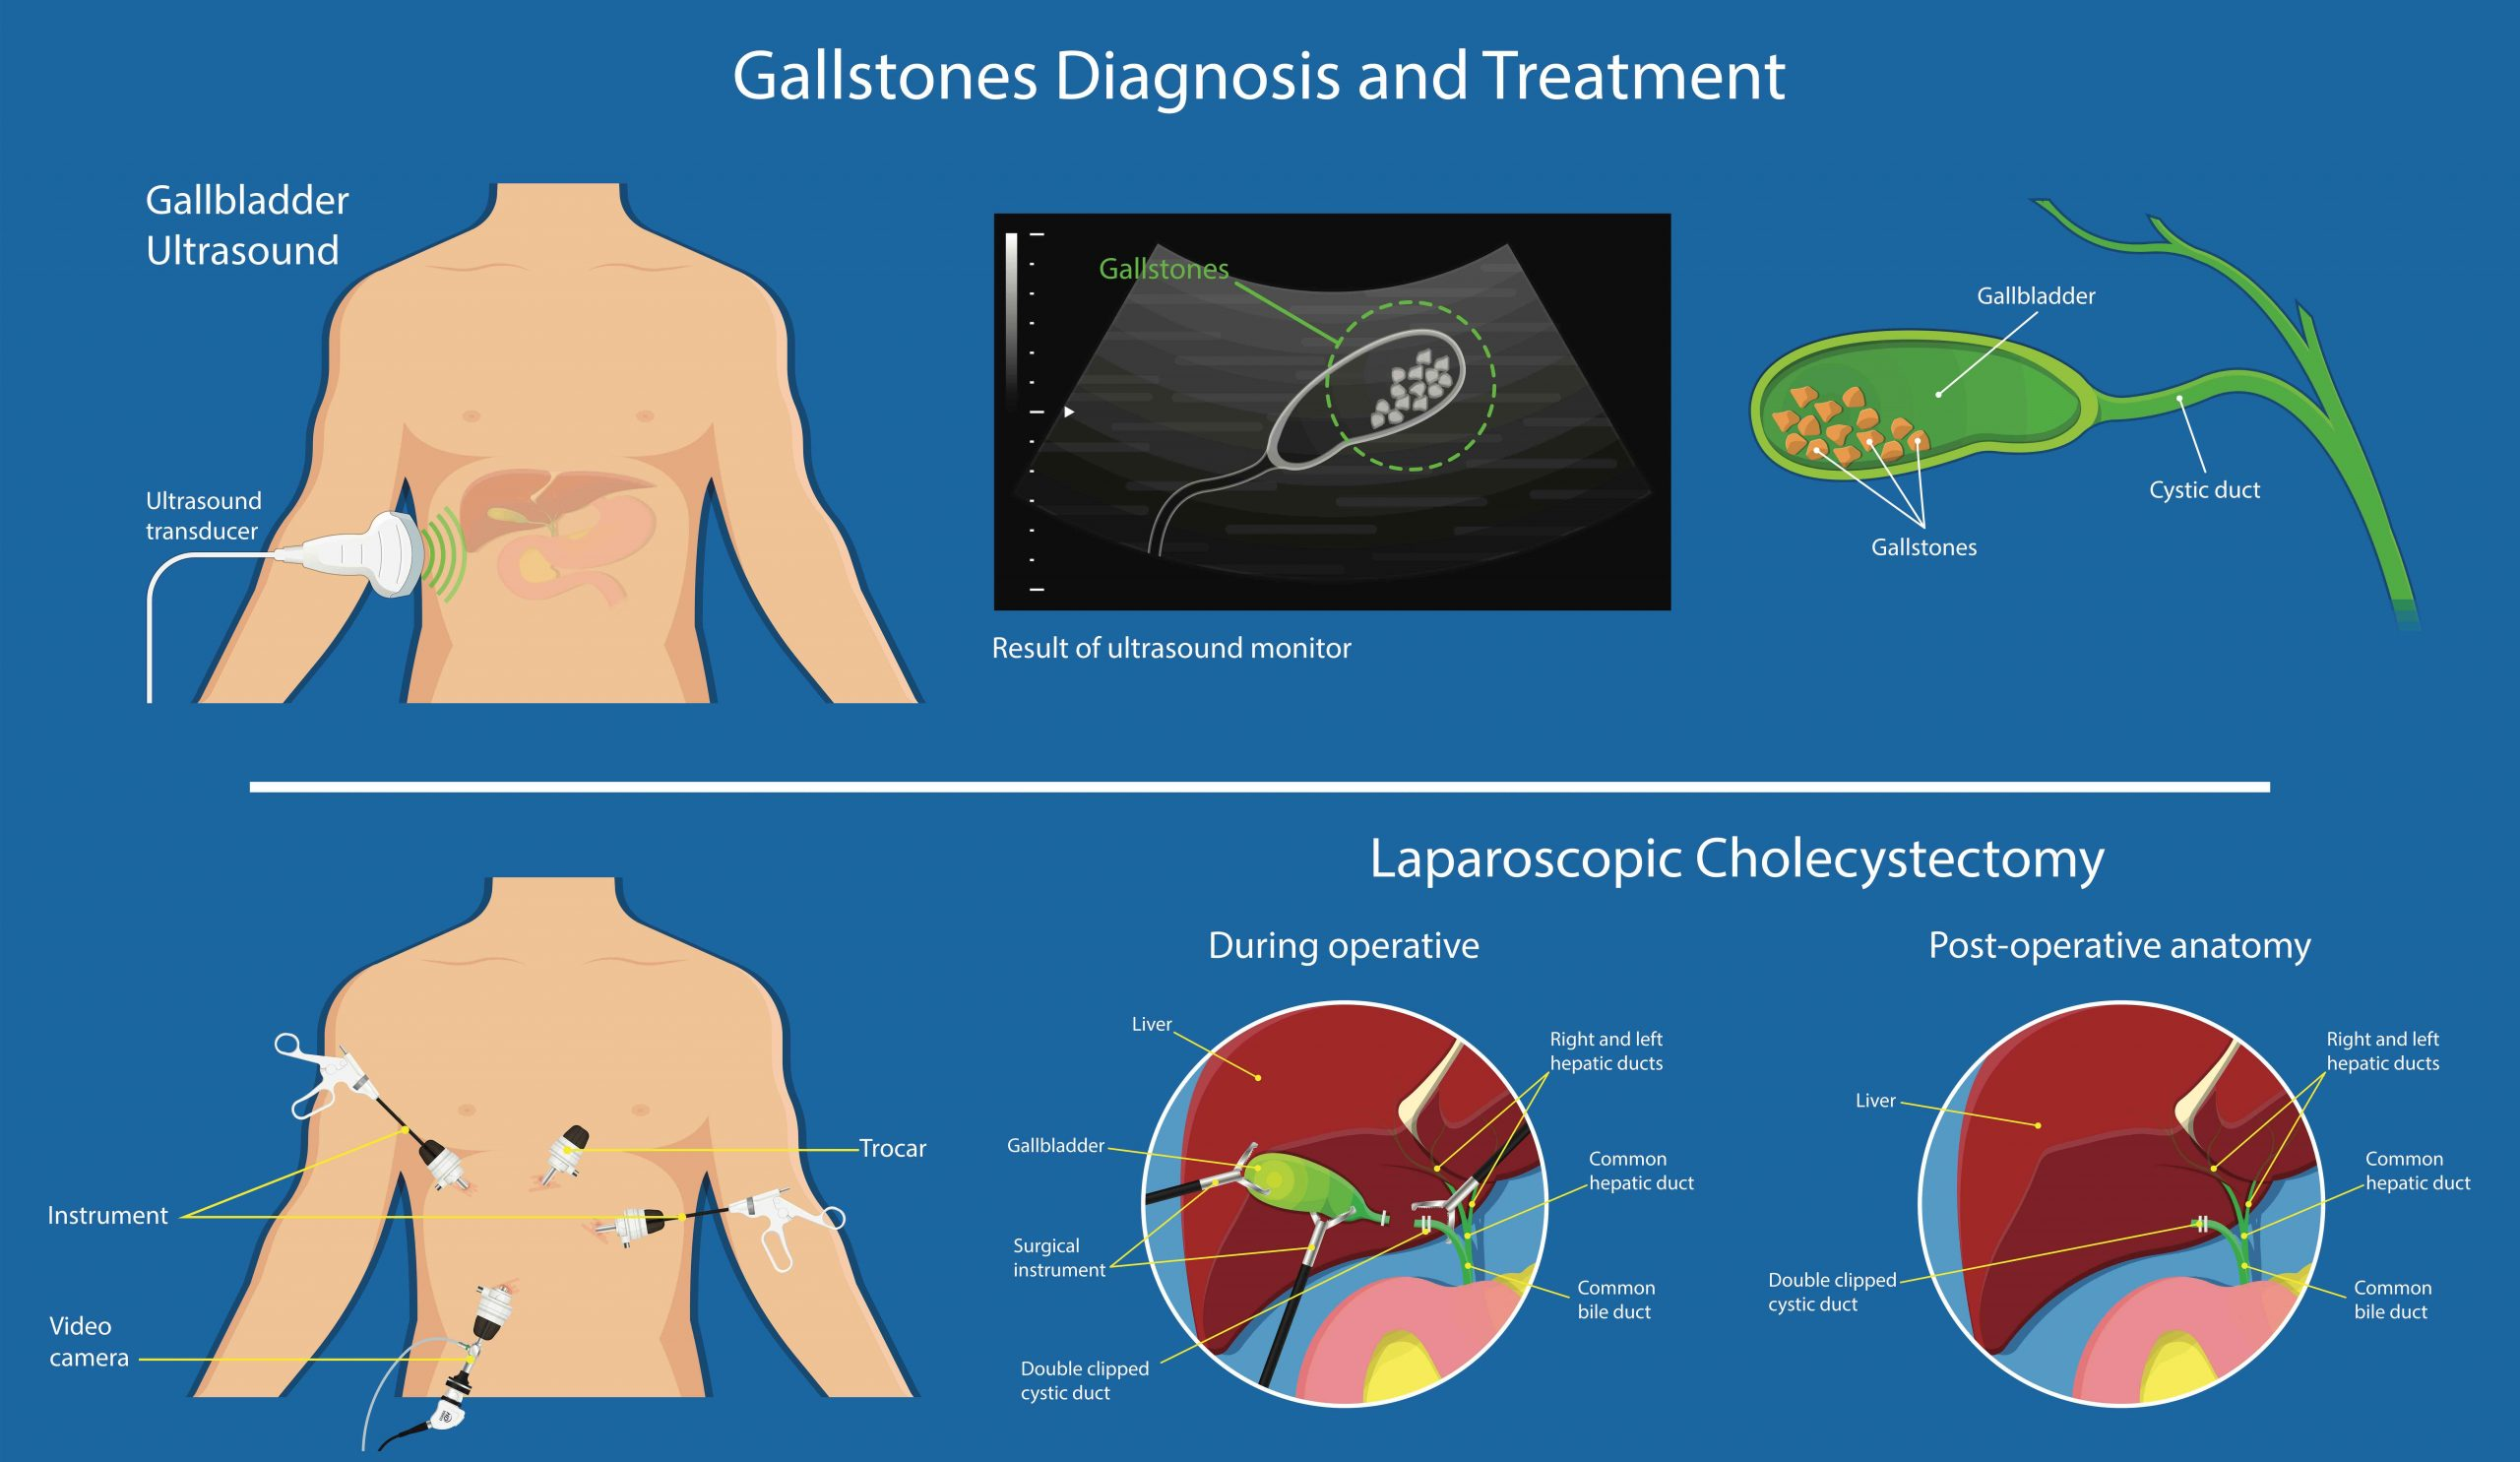 Complications, Causes, Signs and Symptoms of Gallstones (Cholelithiasis)